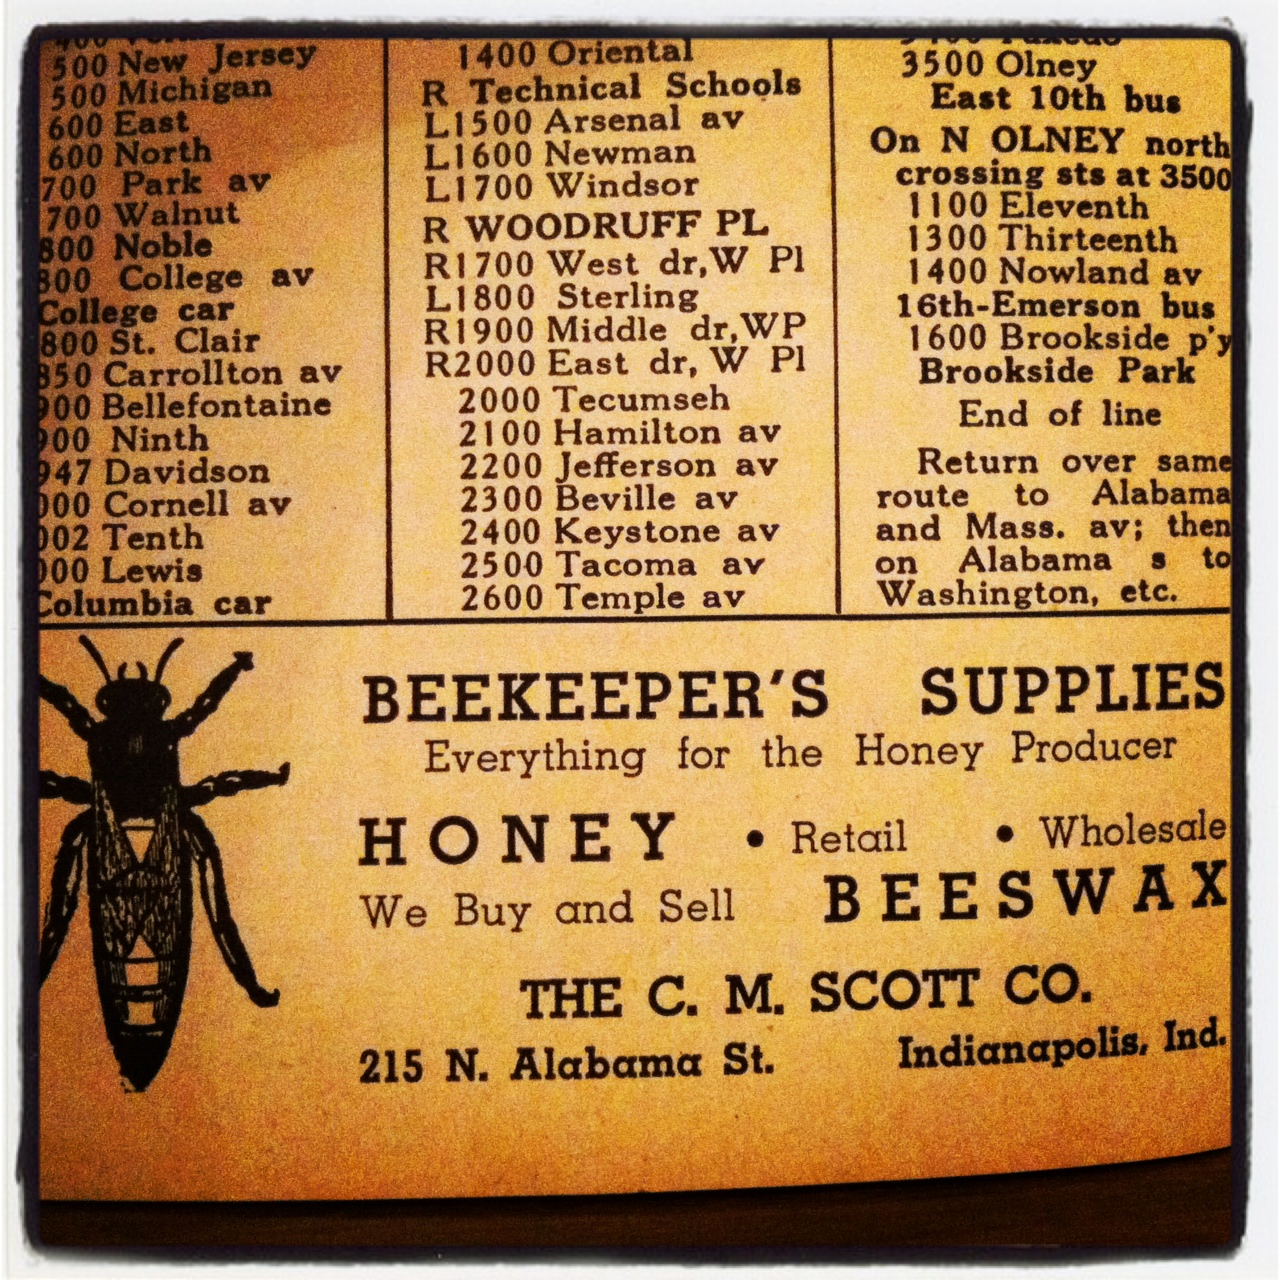 Sunday Ads: Unexpected Honeybees